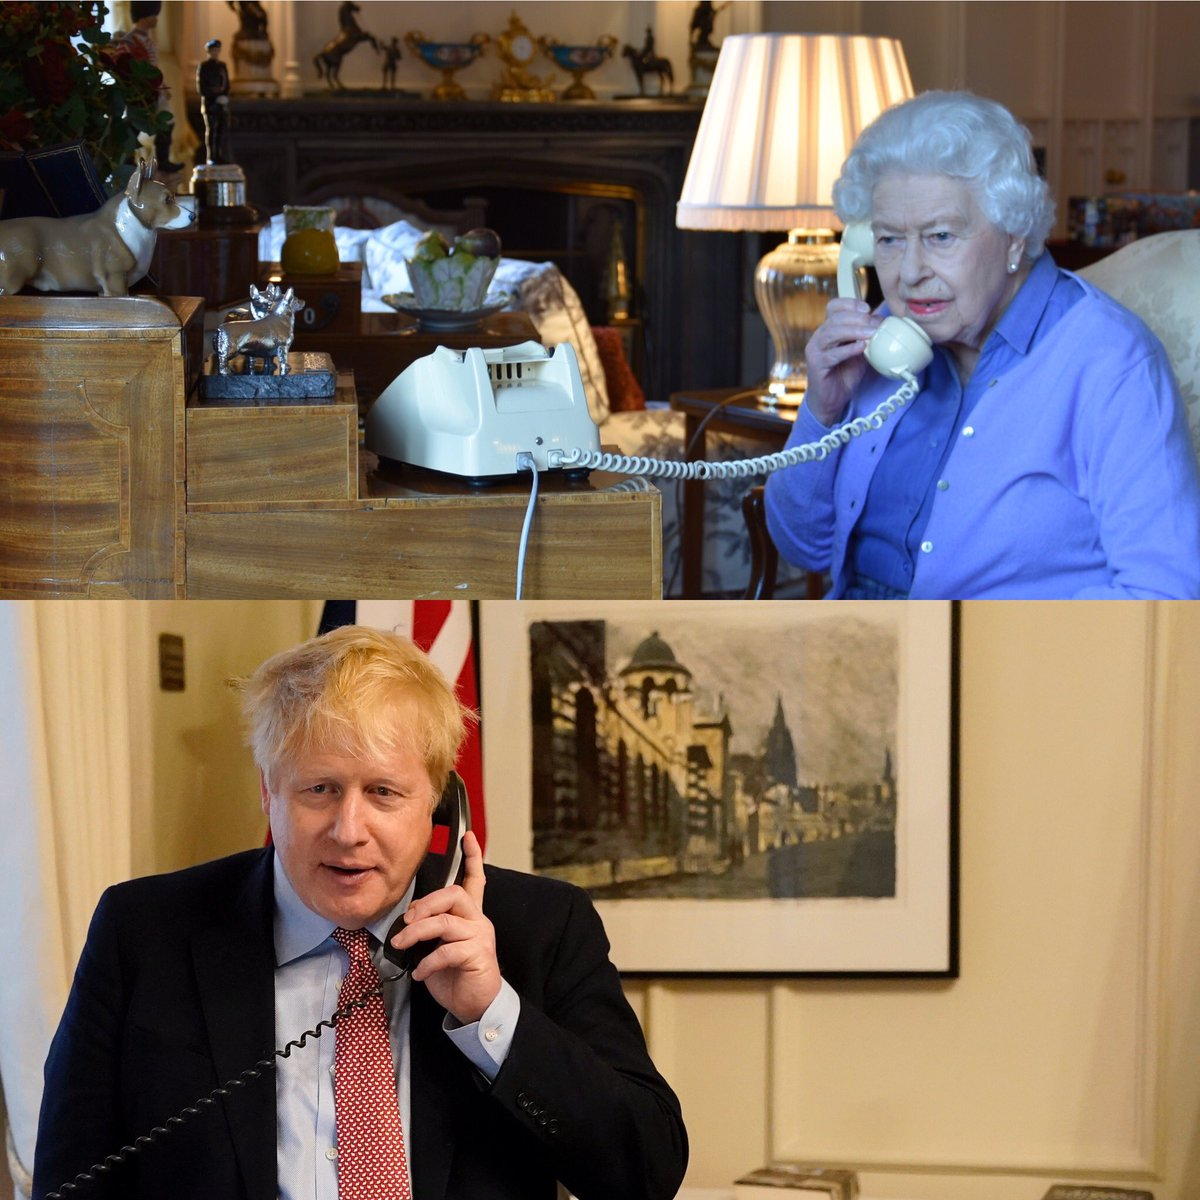 #UK's Queen Elizabeth II held a weekly audience with PM @BorisJohnson by telephone because of #COVID19 outbreak from Windsor Castle  @RoyalFamily #QueenElizabeth #ElizabethII #BritishRoyalFamily pic.twitter.com/qAxEYfkurm